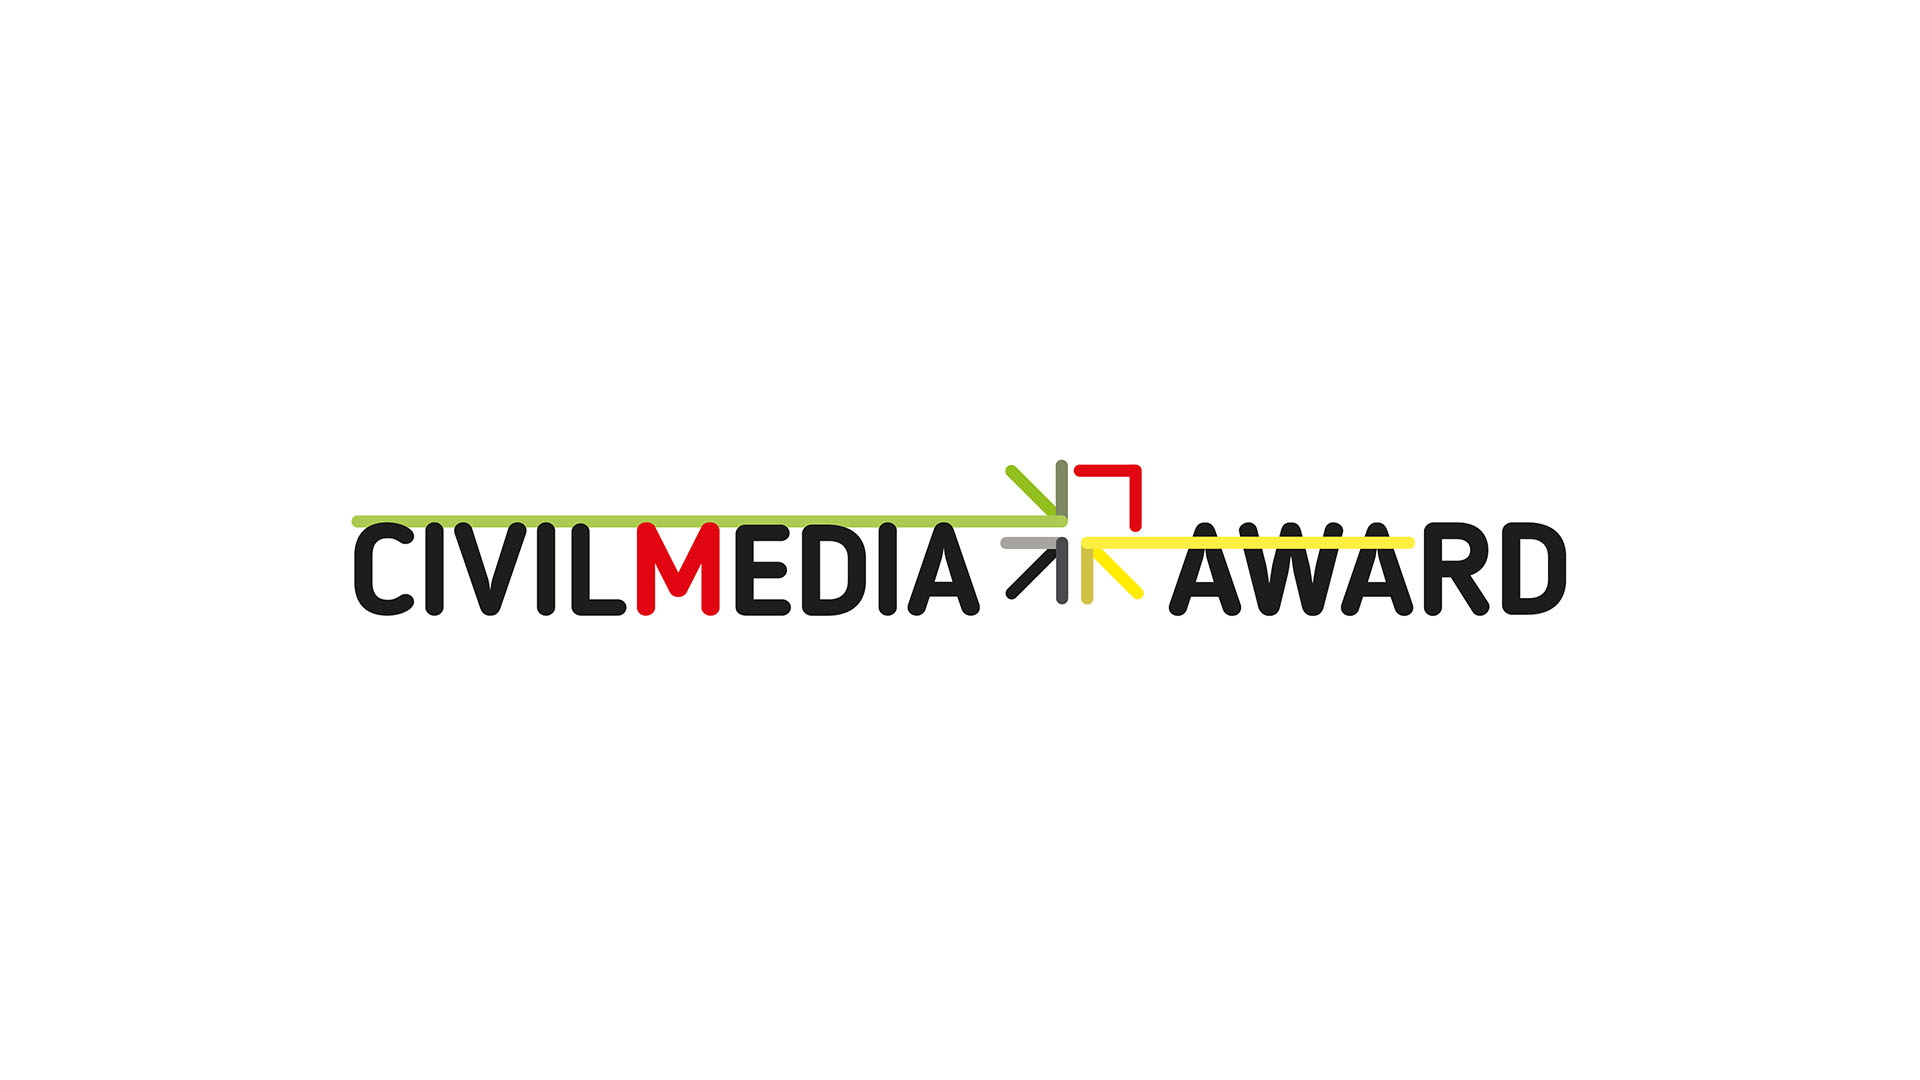 Civilmedia Award